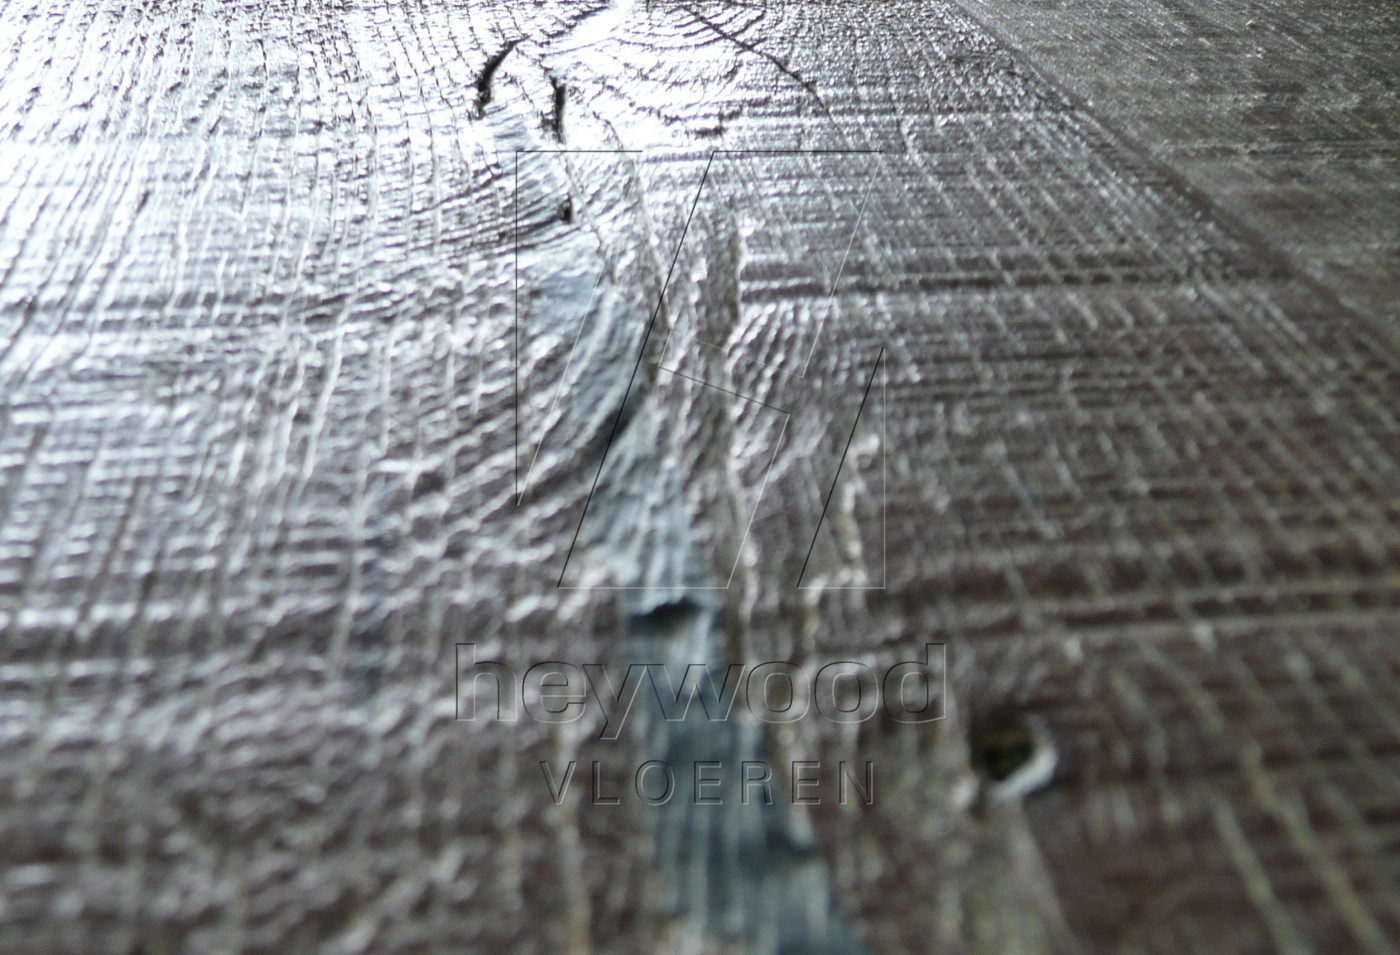 Grading & Surface Knotting Hill in Aged Knotting Hill Surface of Aged Hardwood Floors